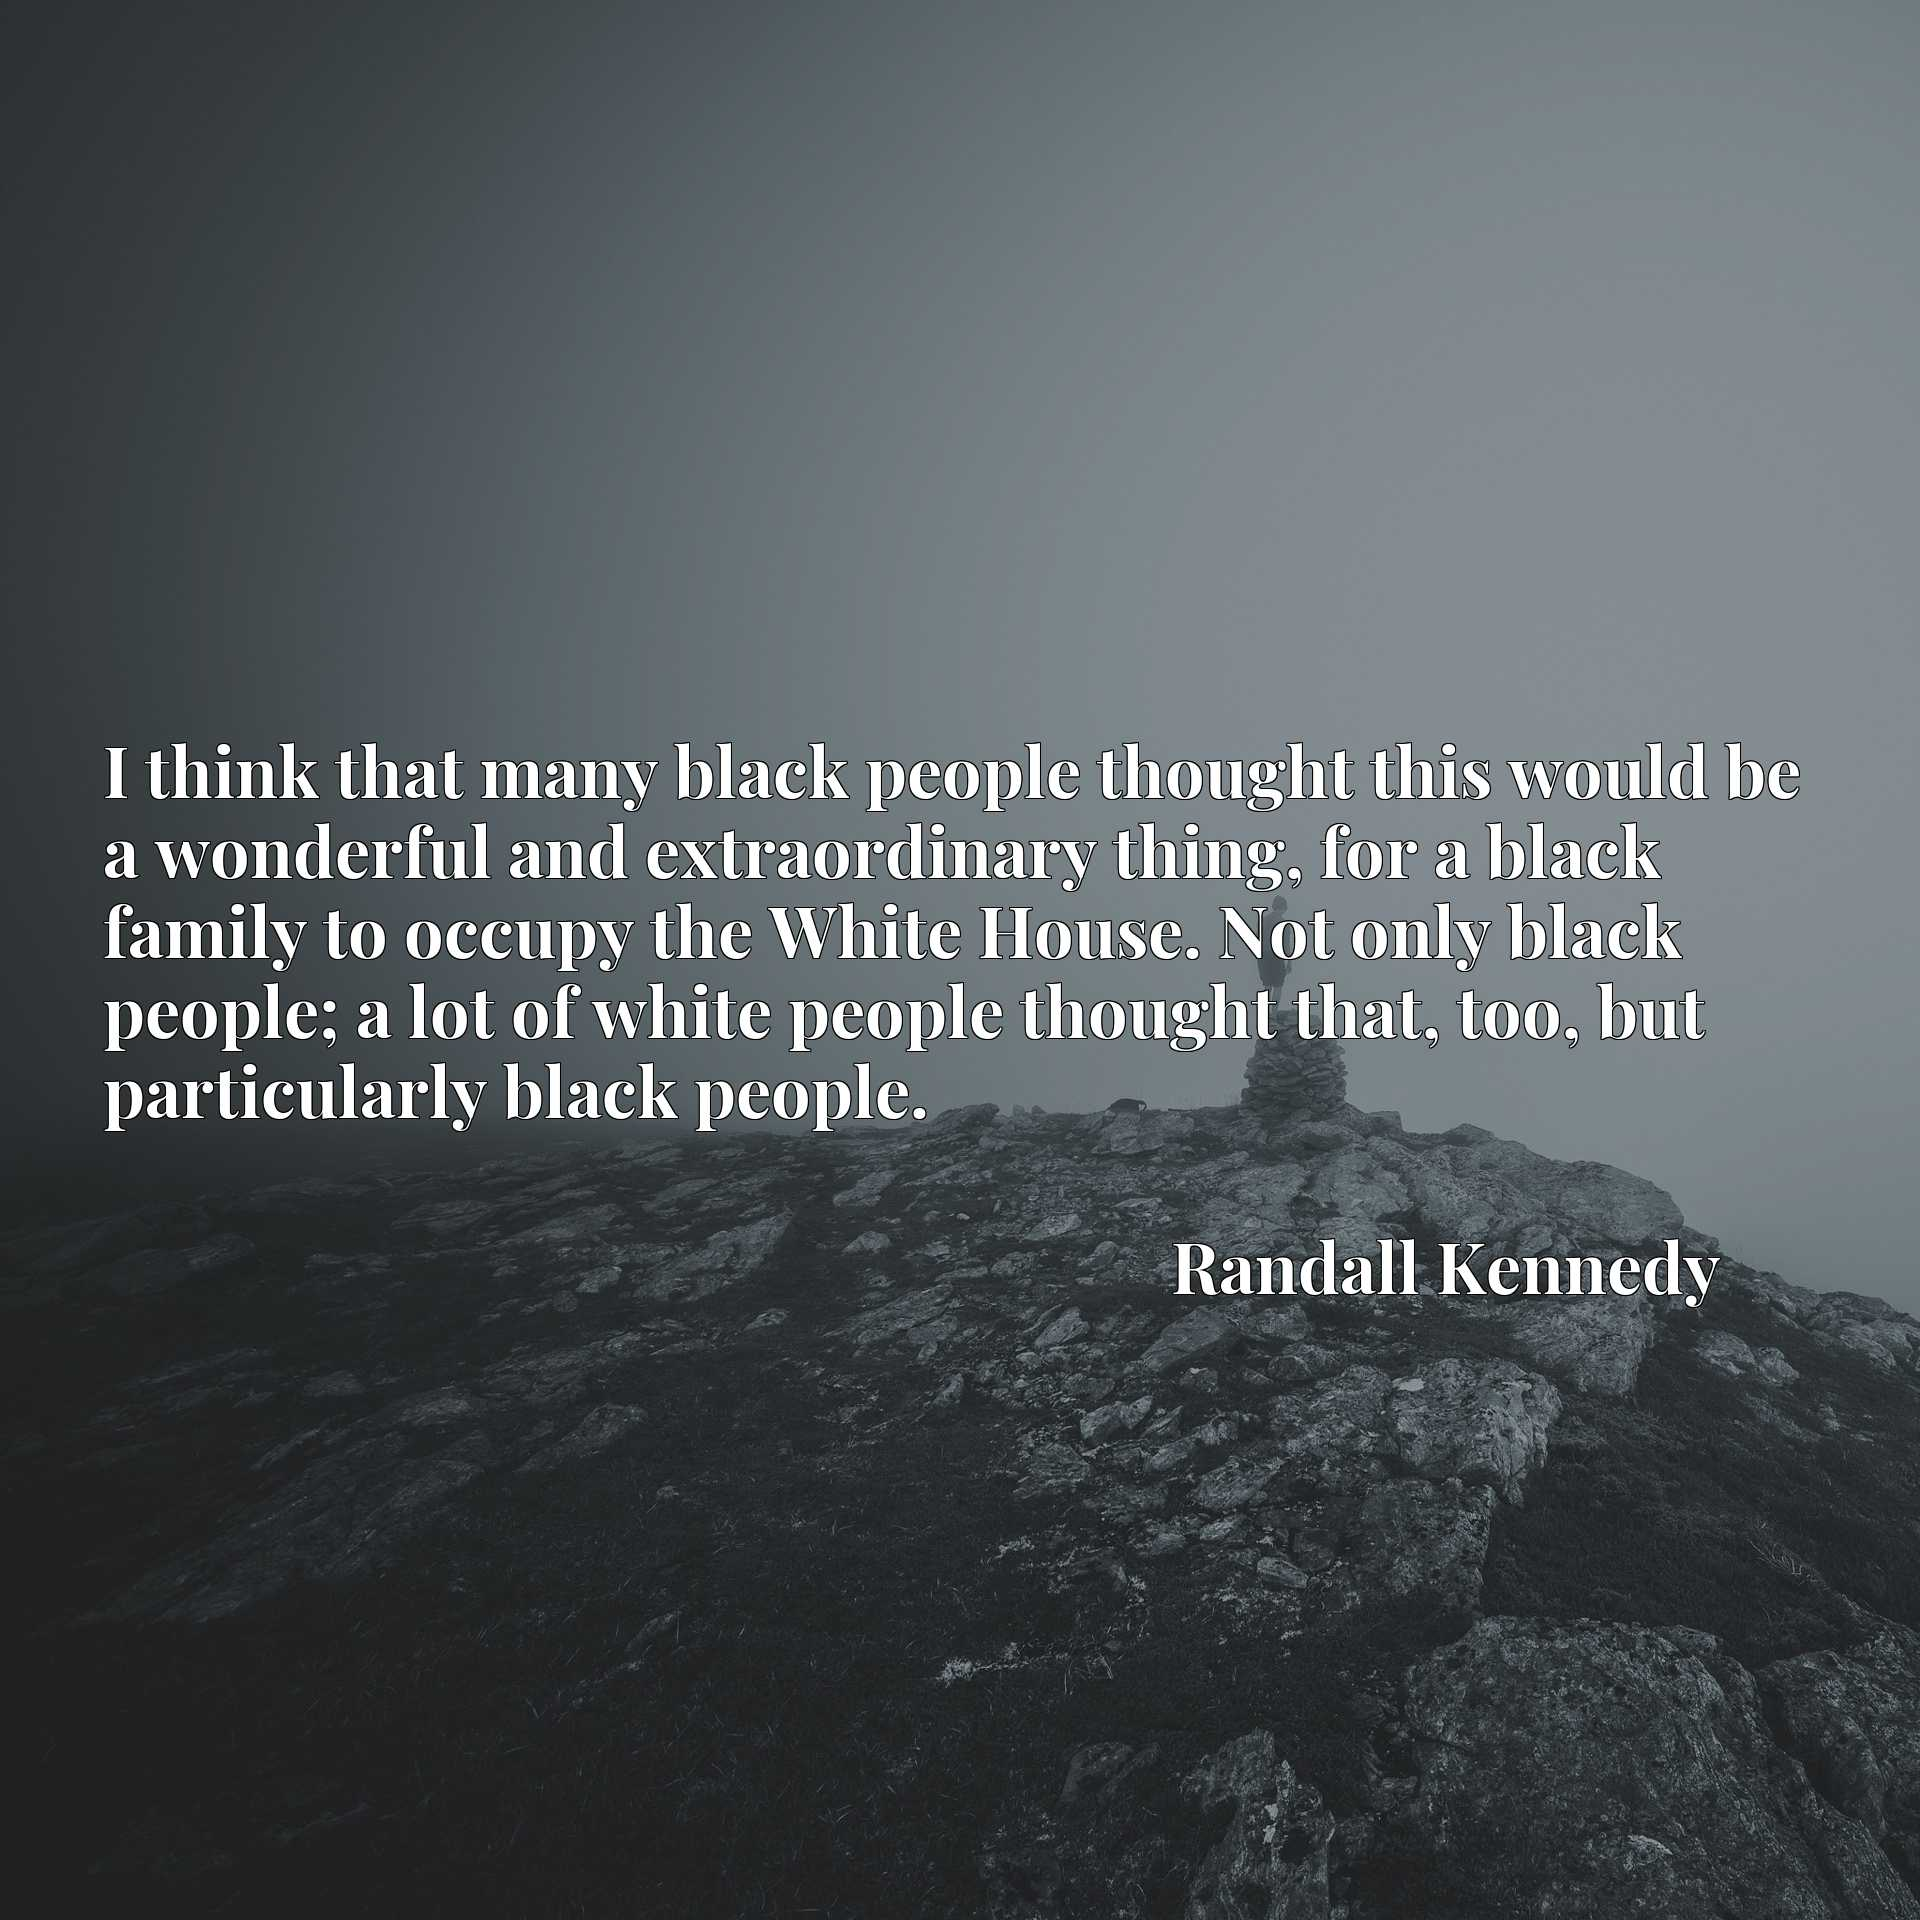 I think that many black people thought this would be a wonderful and extraordinary thing, for a black family to occupy the White House. Not only black people; a lot of white people thought that, too, but particularly black people.